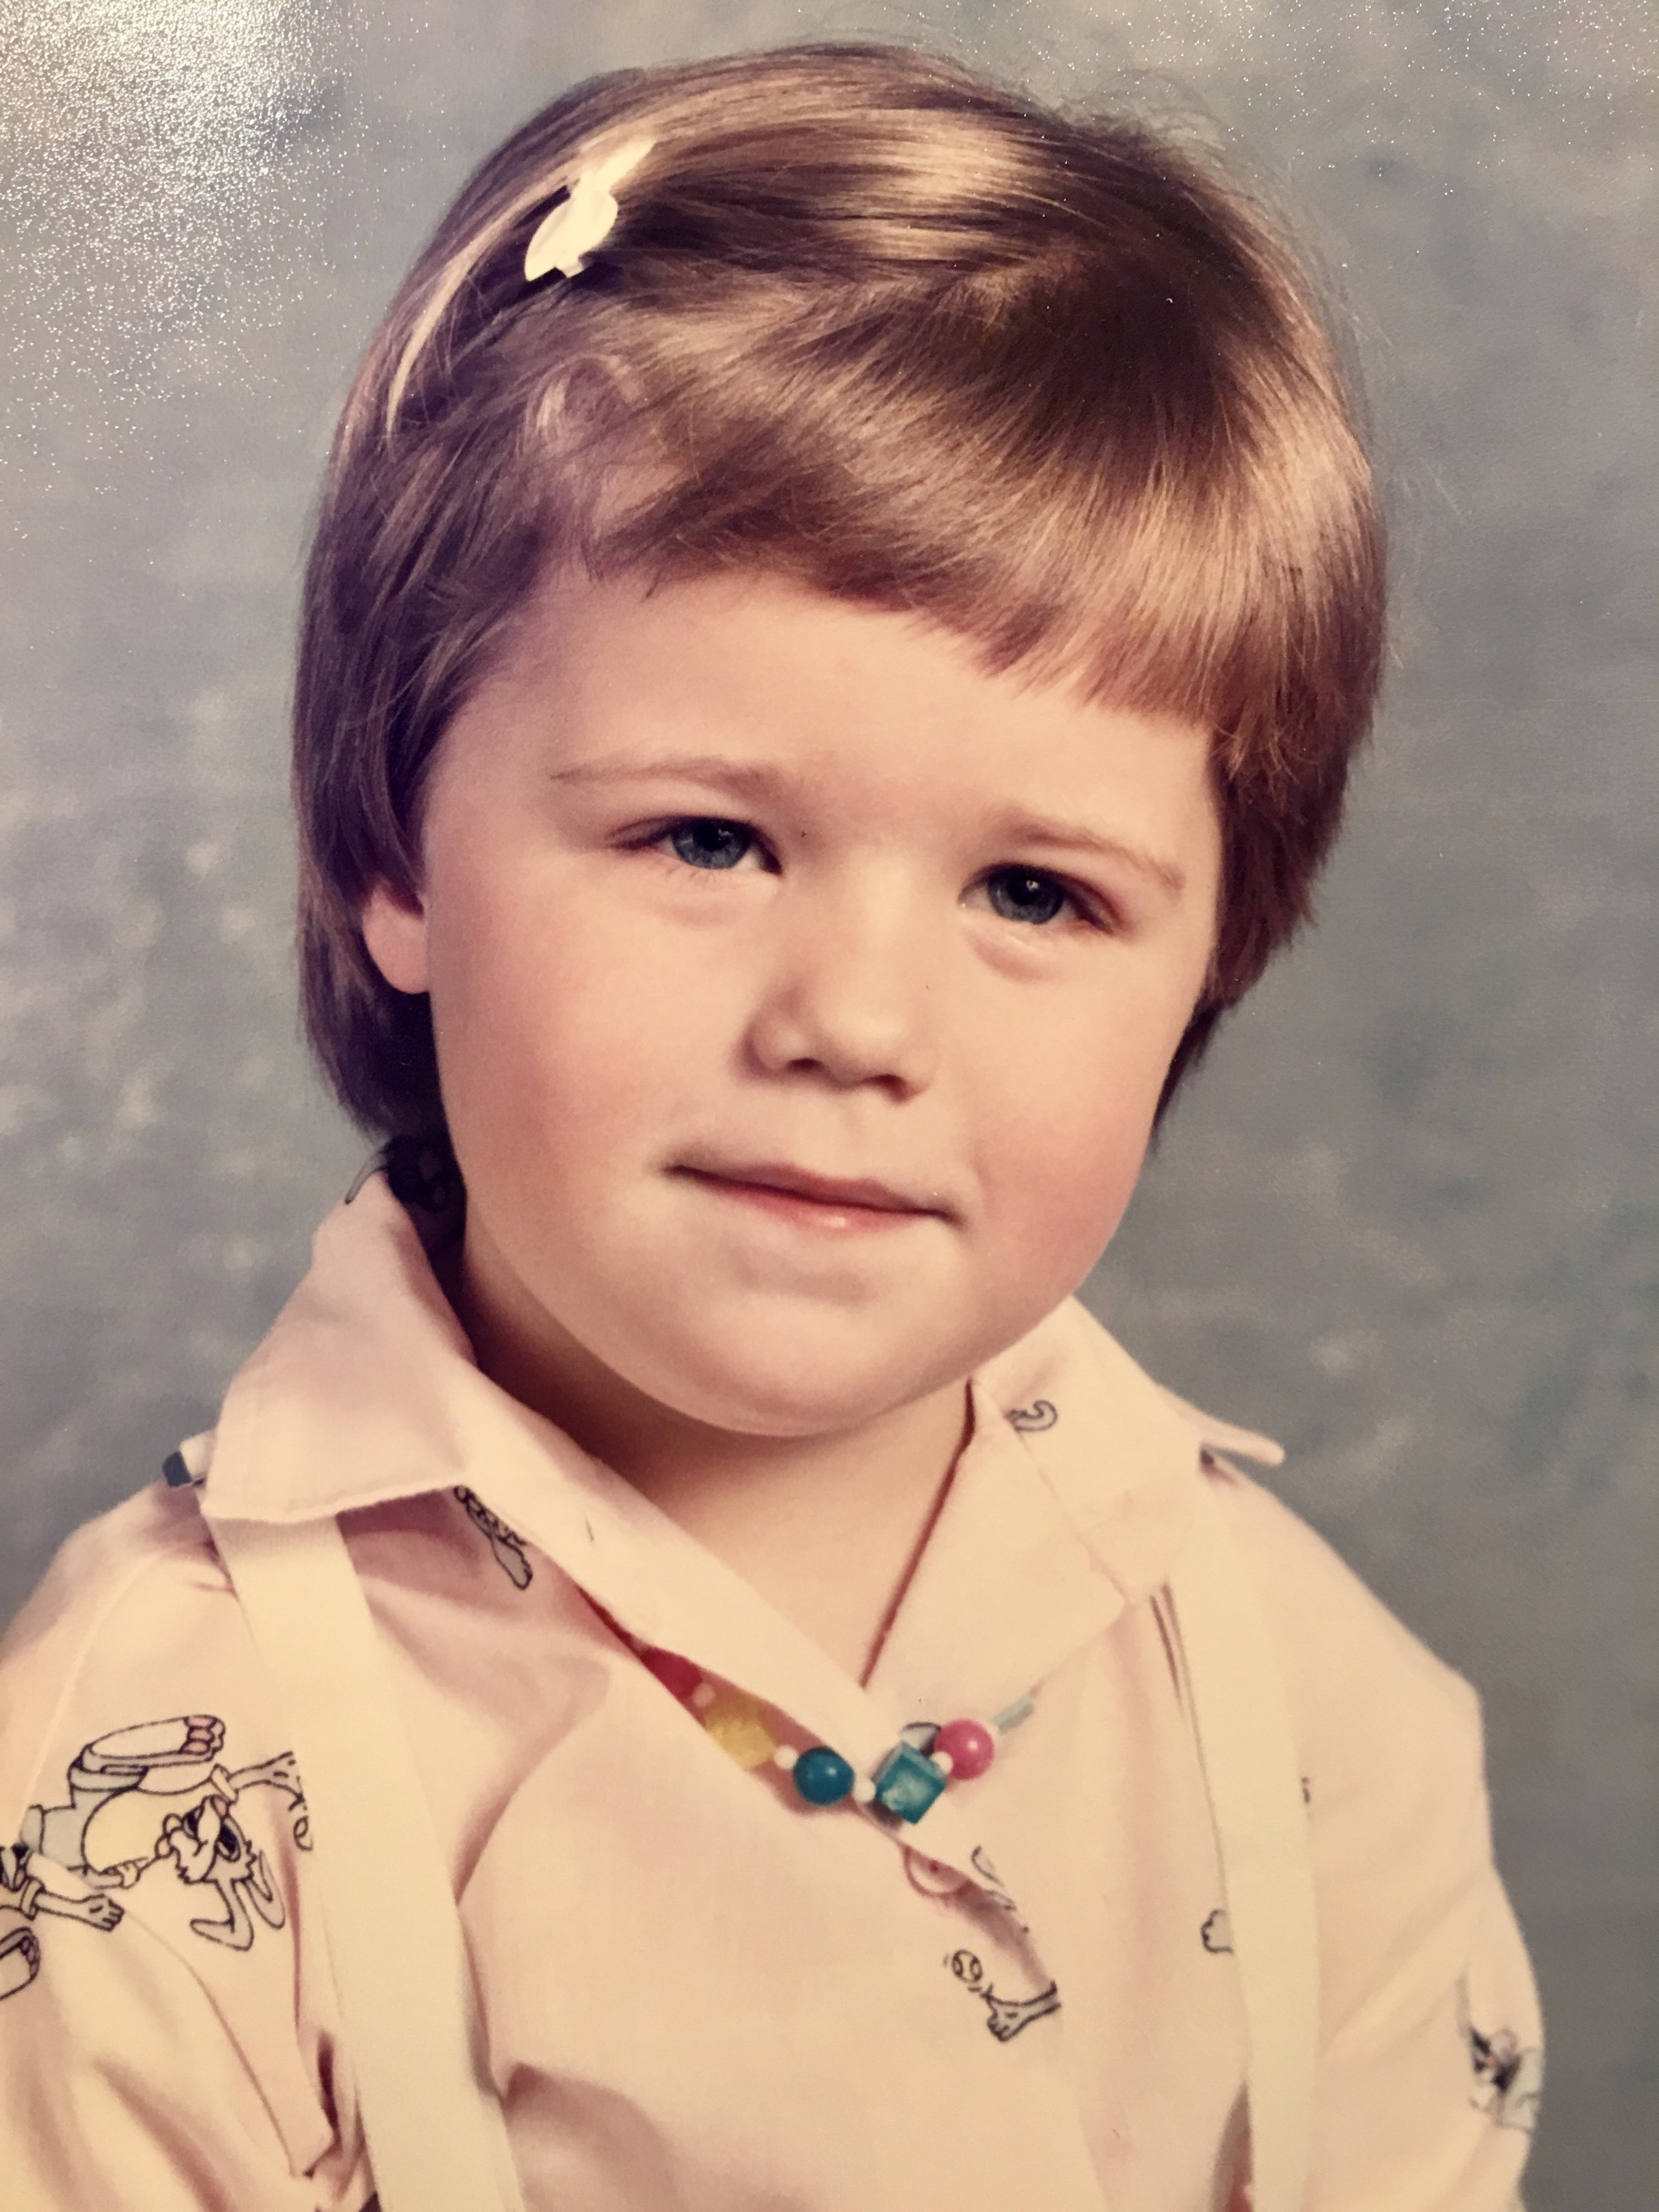 This is my favorite picture of little me. The small barrette, the necklace, the suspenders. Feels very put together.